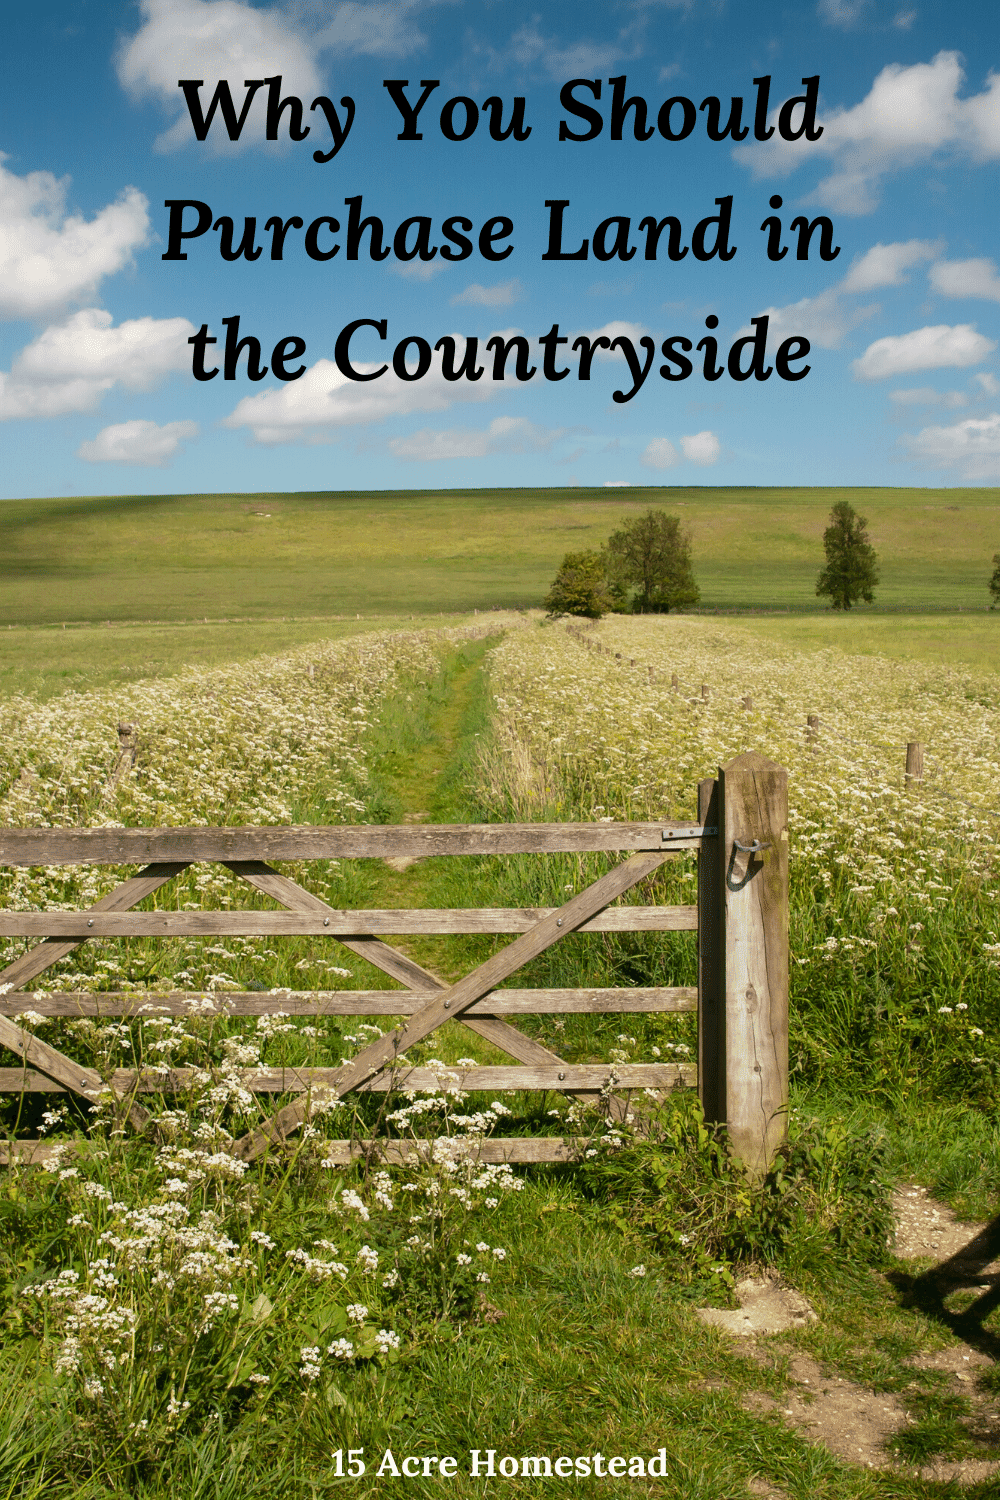 Are you getting ready to look for a new home? Have you considered moving to the countryside? Here are a few reasons why you should.